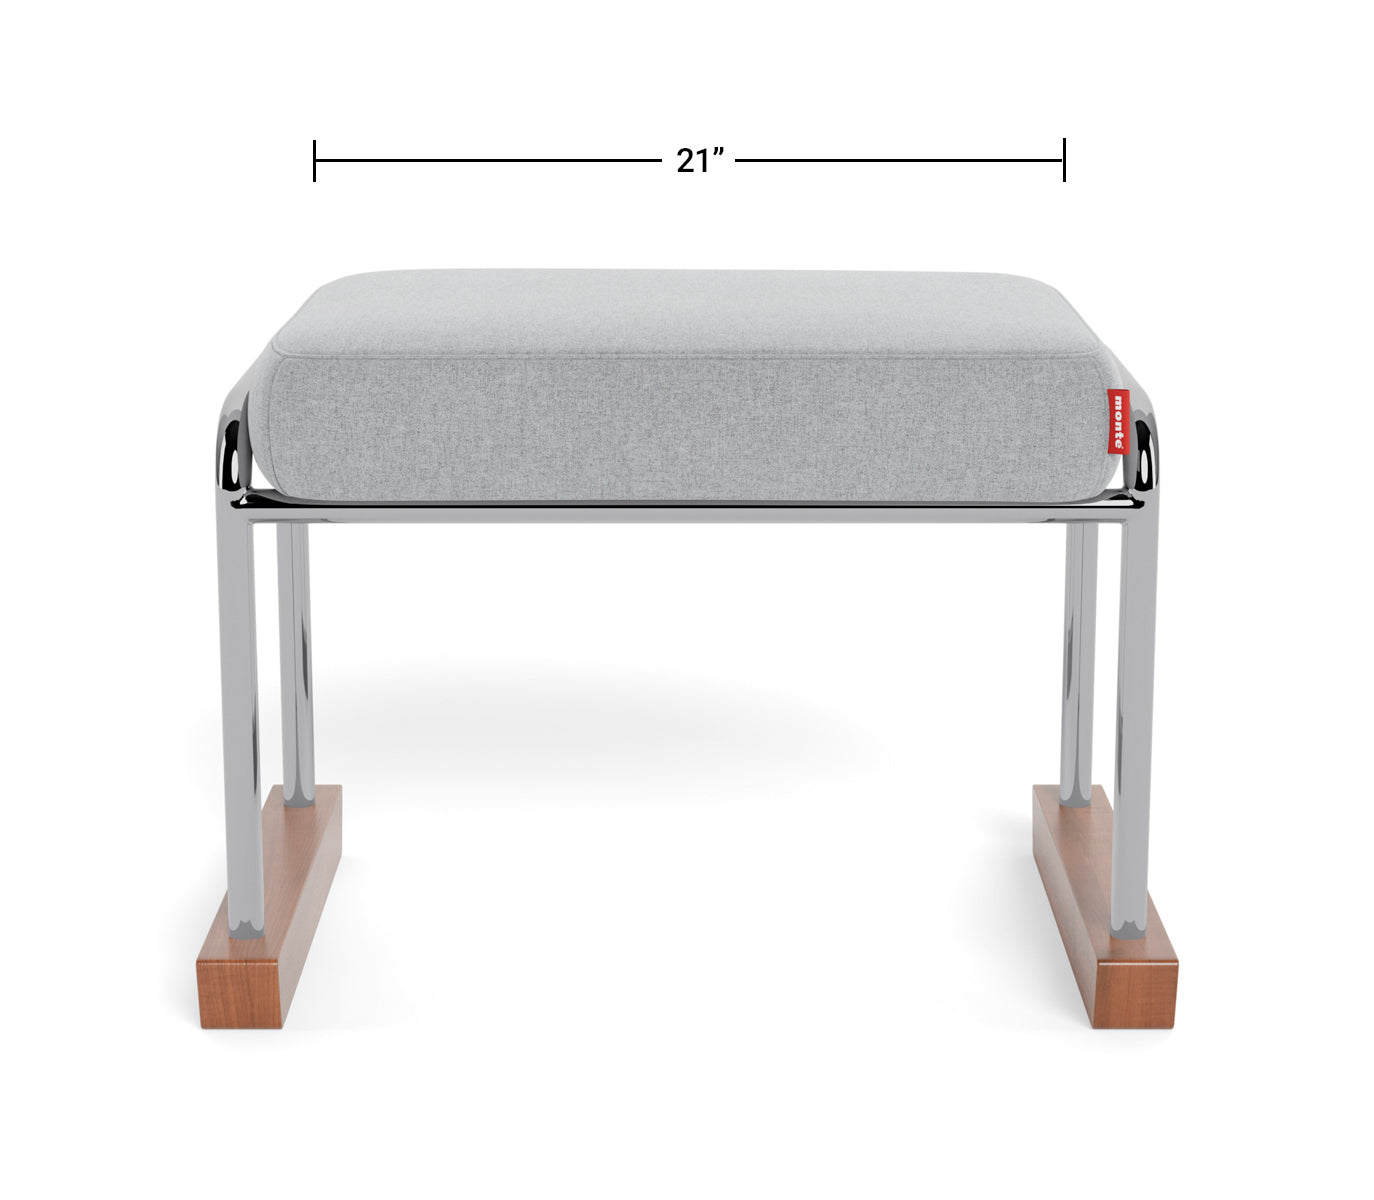 Modern Nursery Ottoman - Jackson Collection Ottoman Dimensions Front View